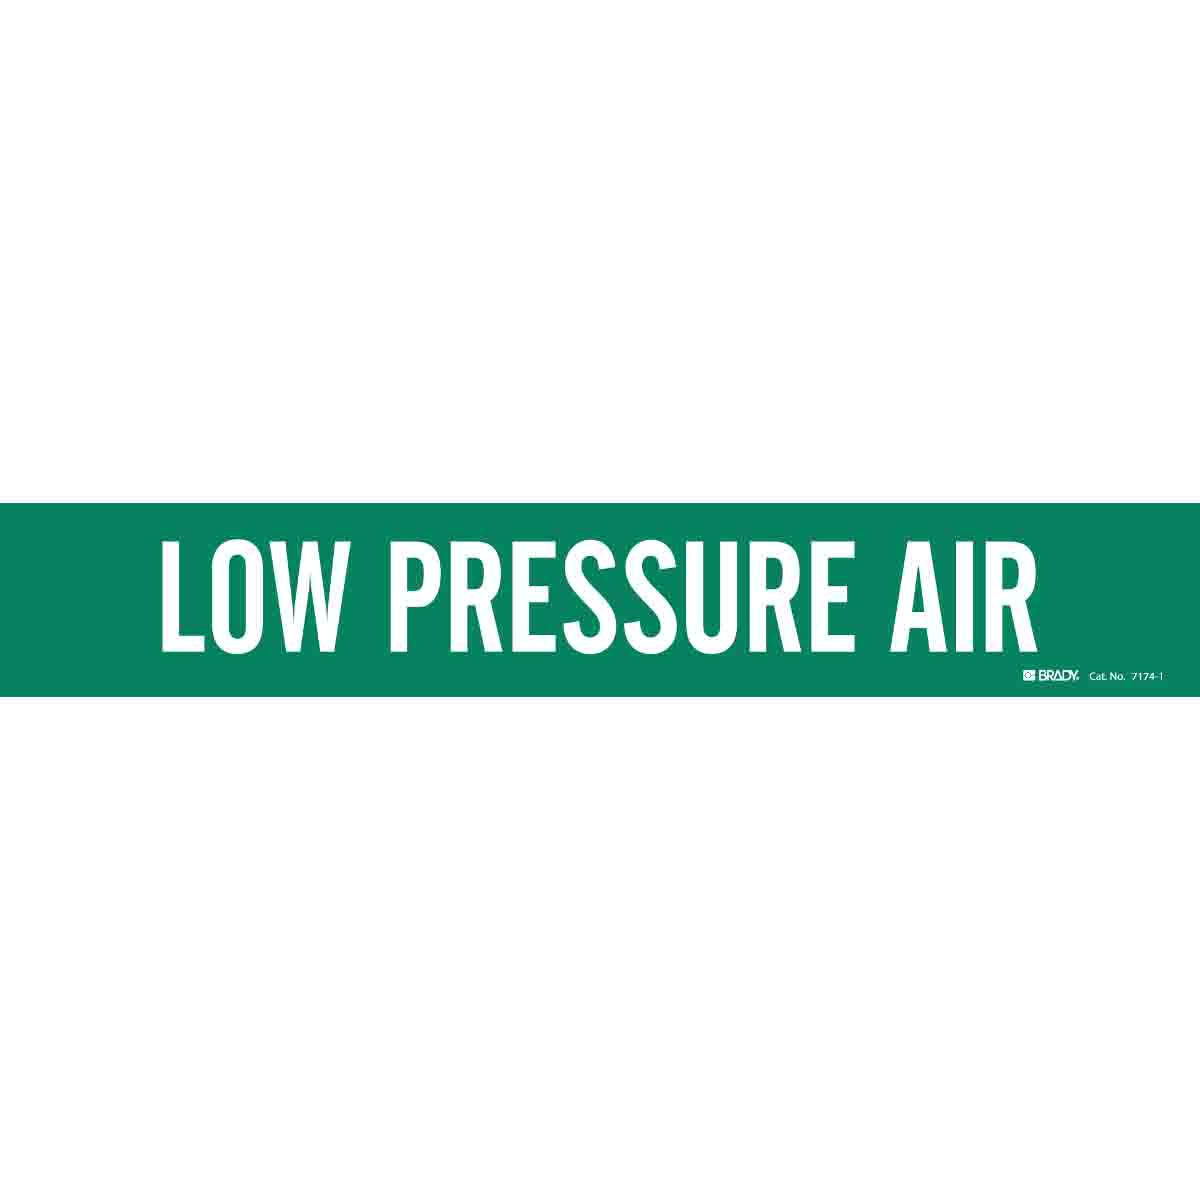 B-946 2 1//4 Height X 14 Width Legend Low Pressure Air 2 1//4 Height X 14 Width Legend Low Pressure Air Brady 7174-1 Self-Sticking Vinyl Pipe Marker White On Green Pressure Sensitive Vinyl